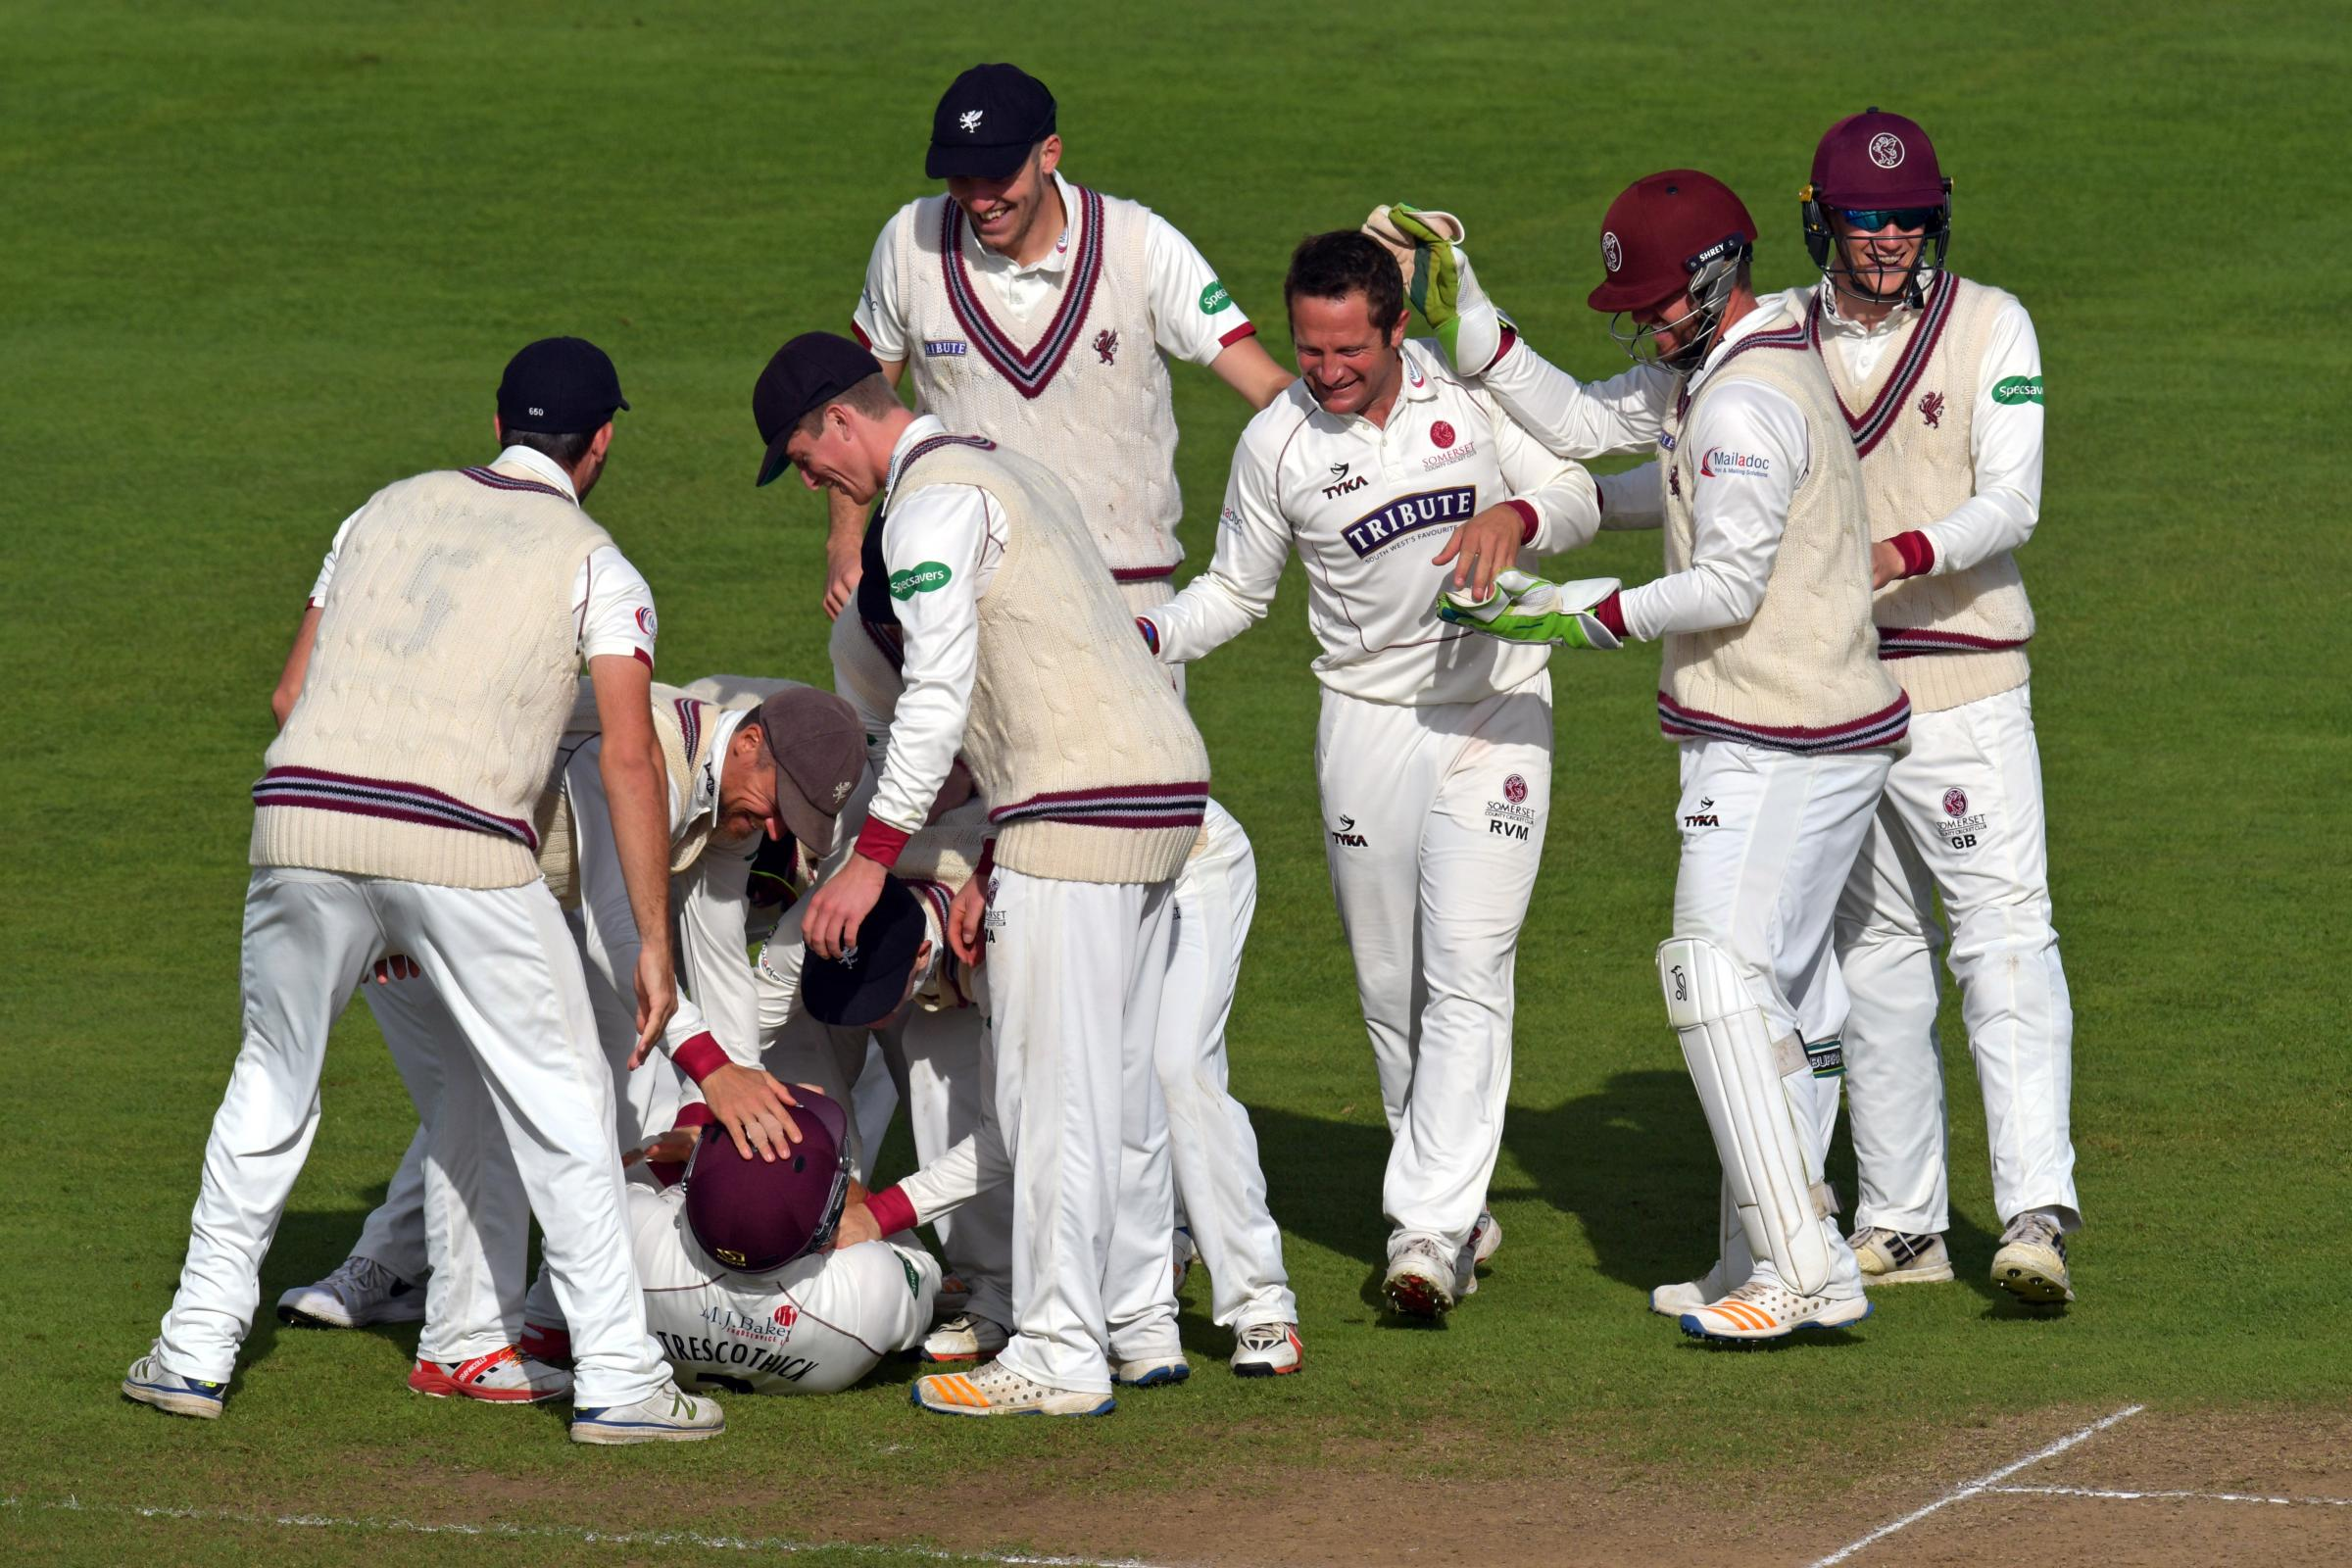 REVEALED: It's Worcestershire up first for Somerset in next year's County Championship.